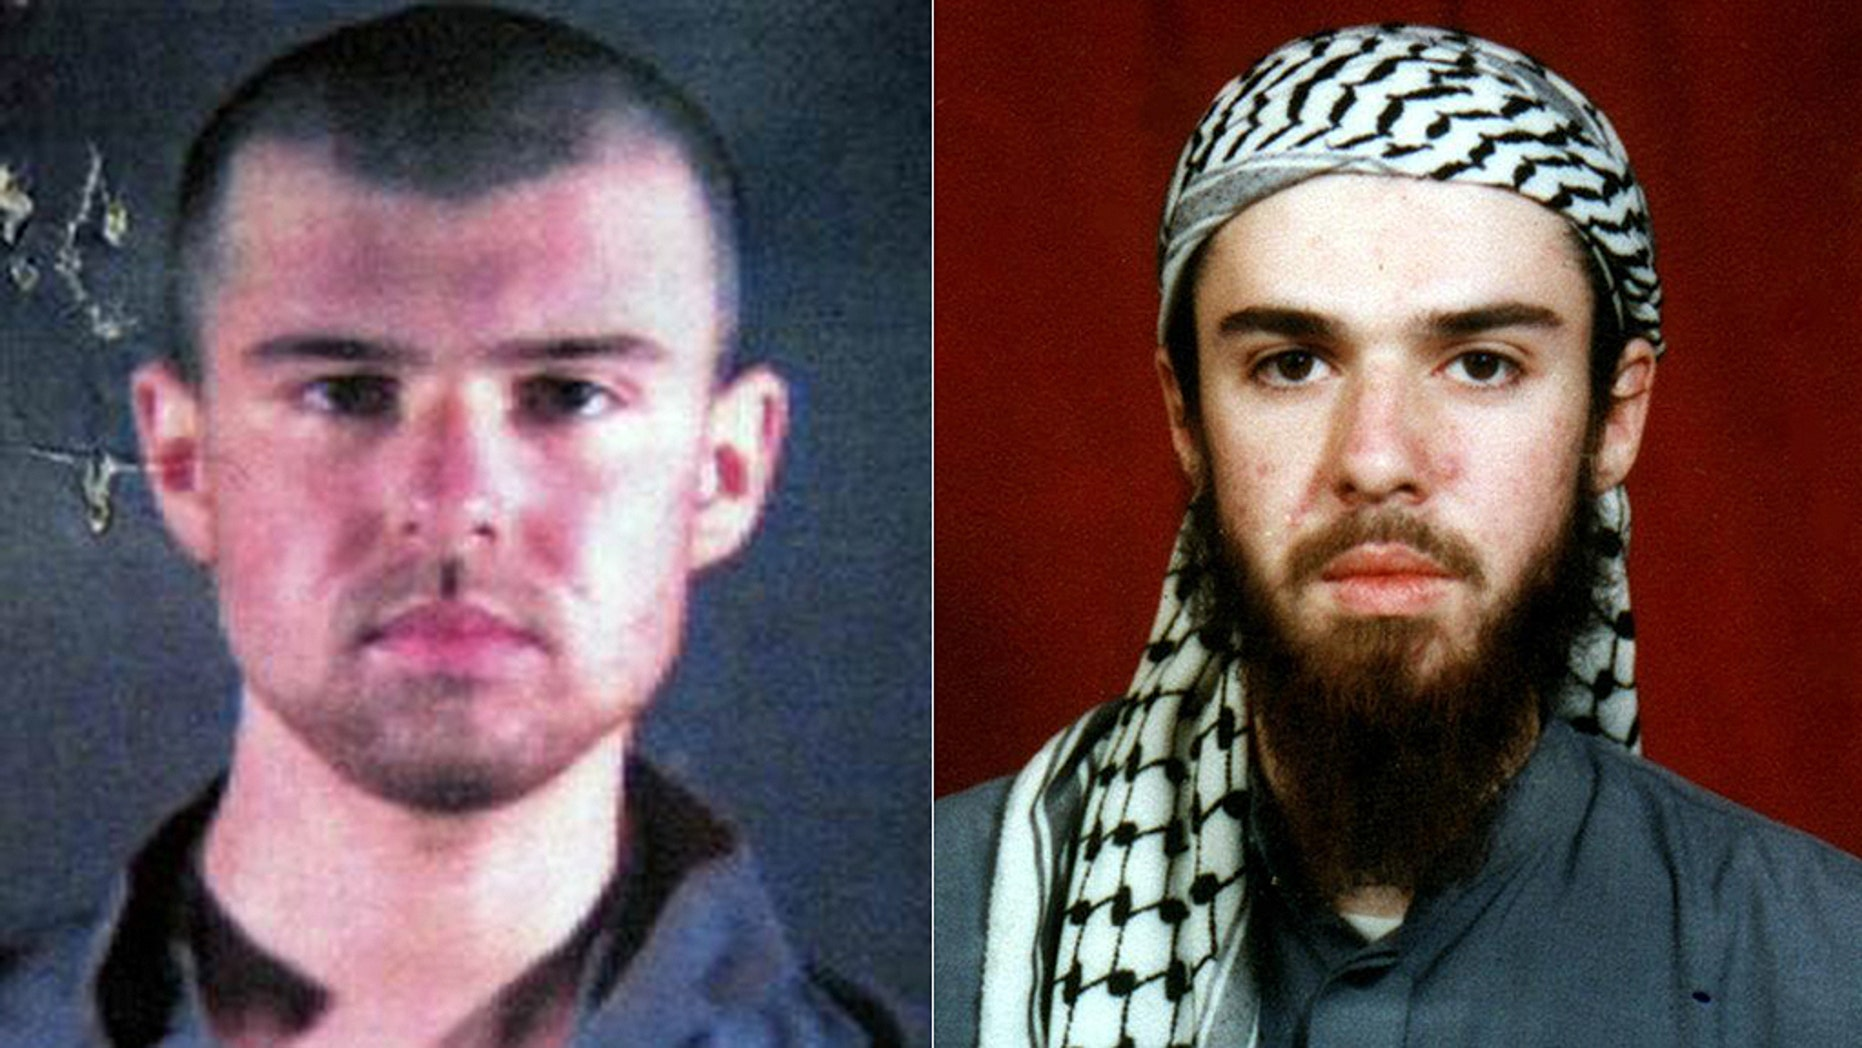 John Walker Lindh, a former American Taliban militant, is due to be freed in May following his conviction in 2002 for the support of the Taliban.